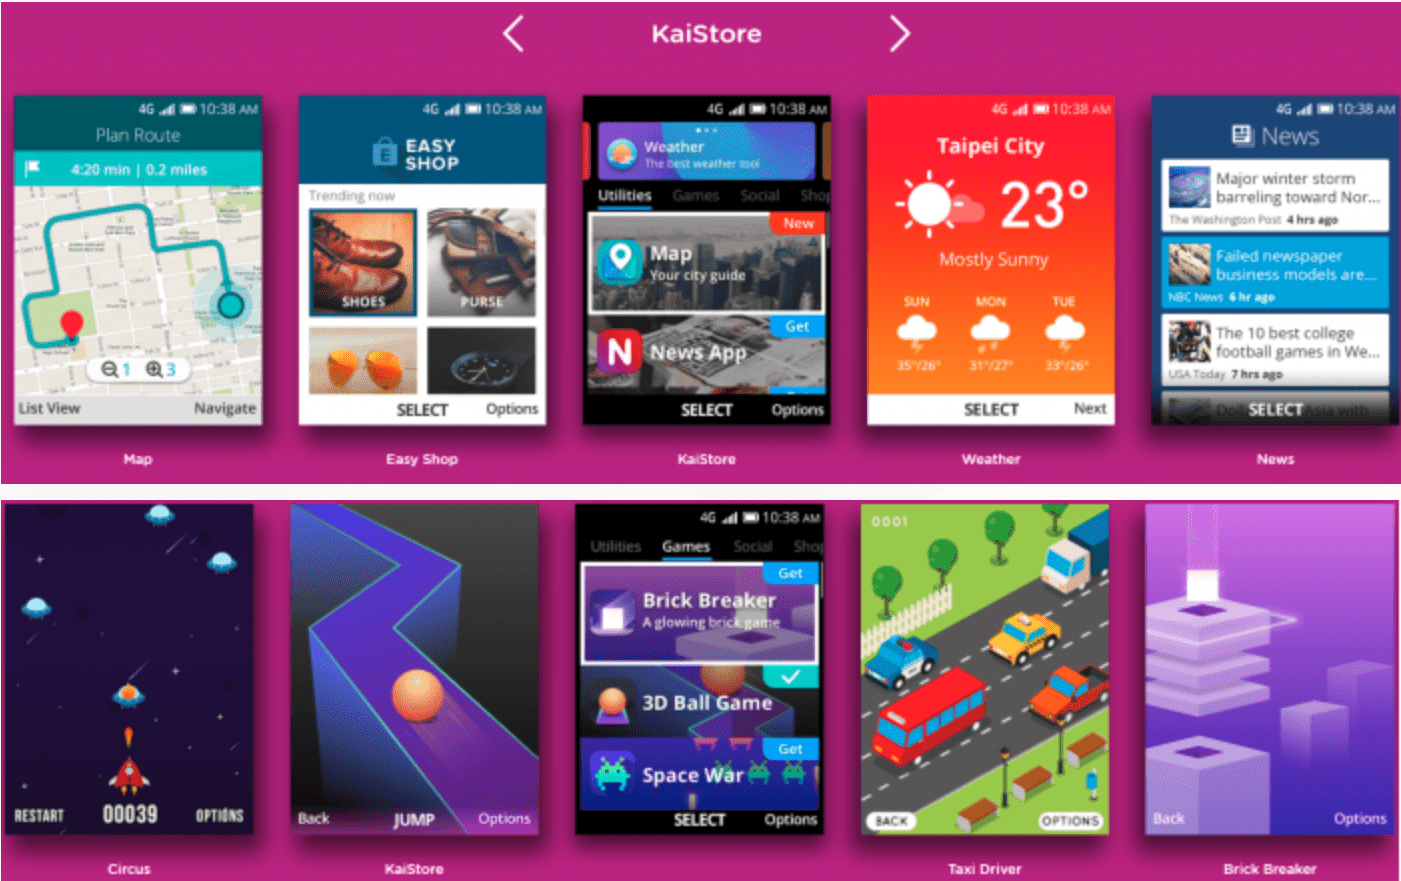 KaiOS Surpasses iOS to Become India's Second Largest Mobile